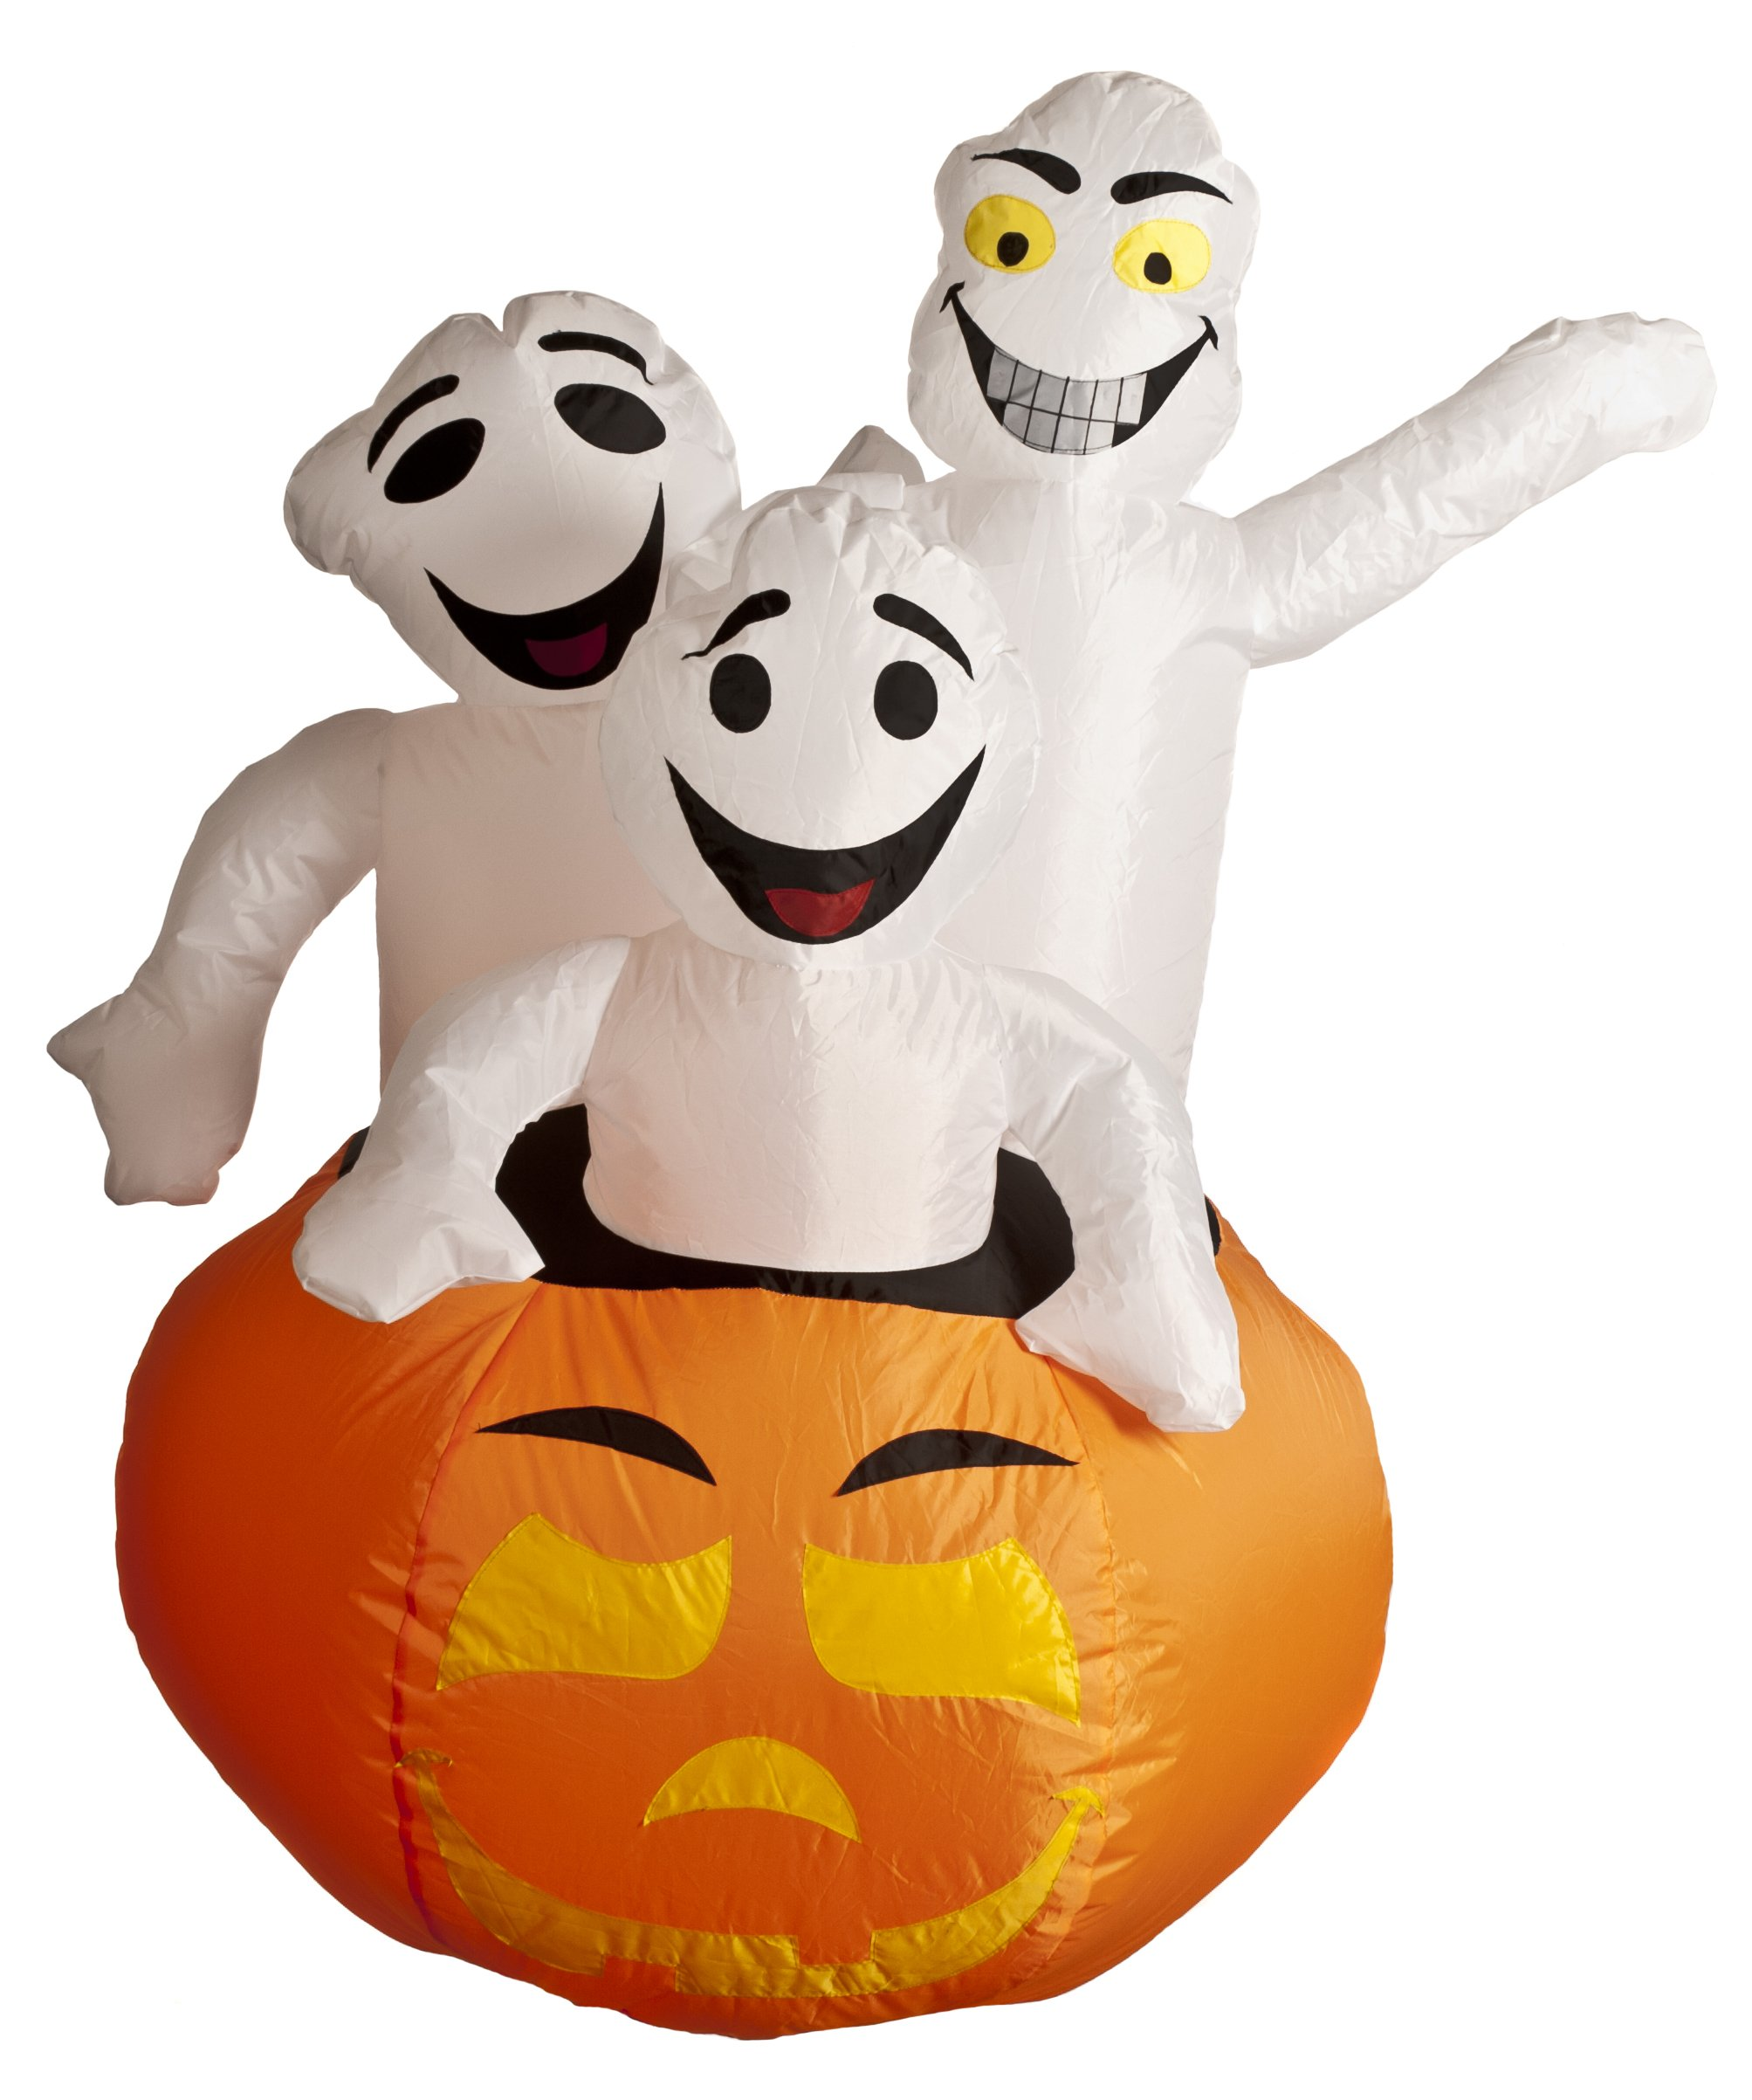 3-Pieces Brite Ideas 803033 122cm Festive Inflatable Pumpkin with 3-Ghosts Jumping Out